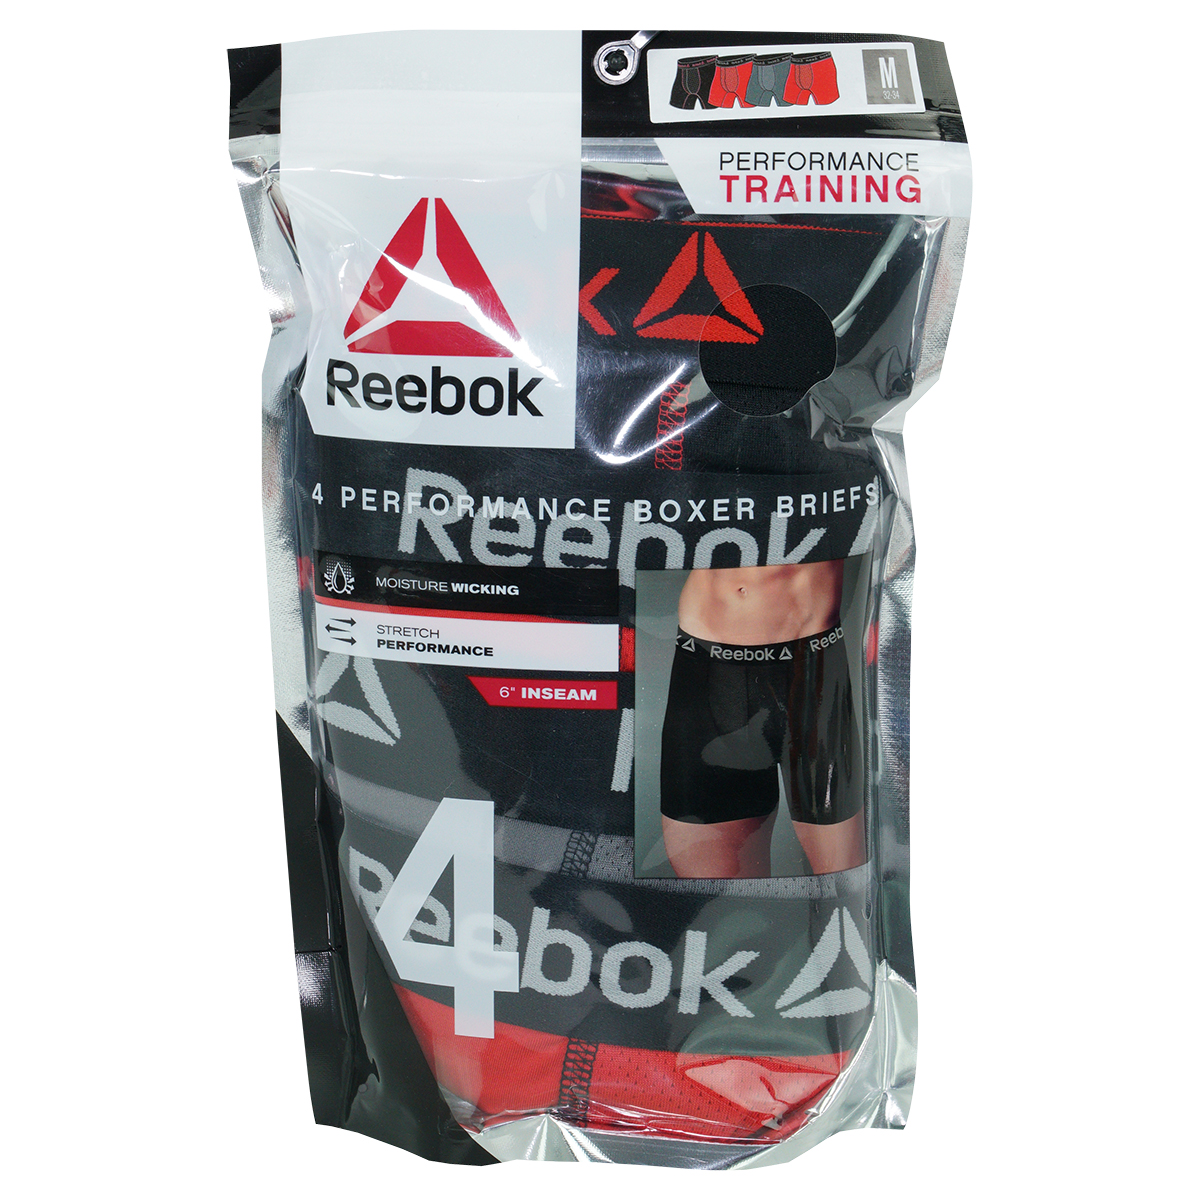 Reebok-Men-039-s-Performance-Boxer-Briefs-4-Pack thumbnail 15